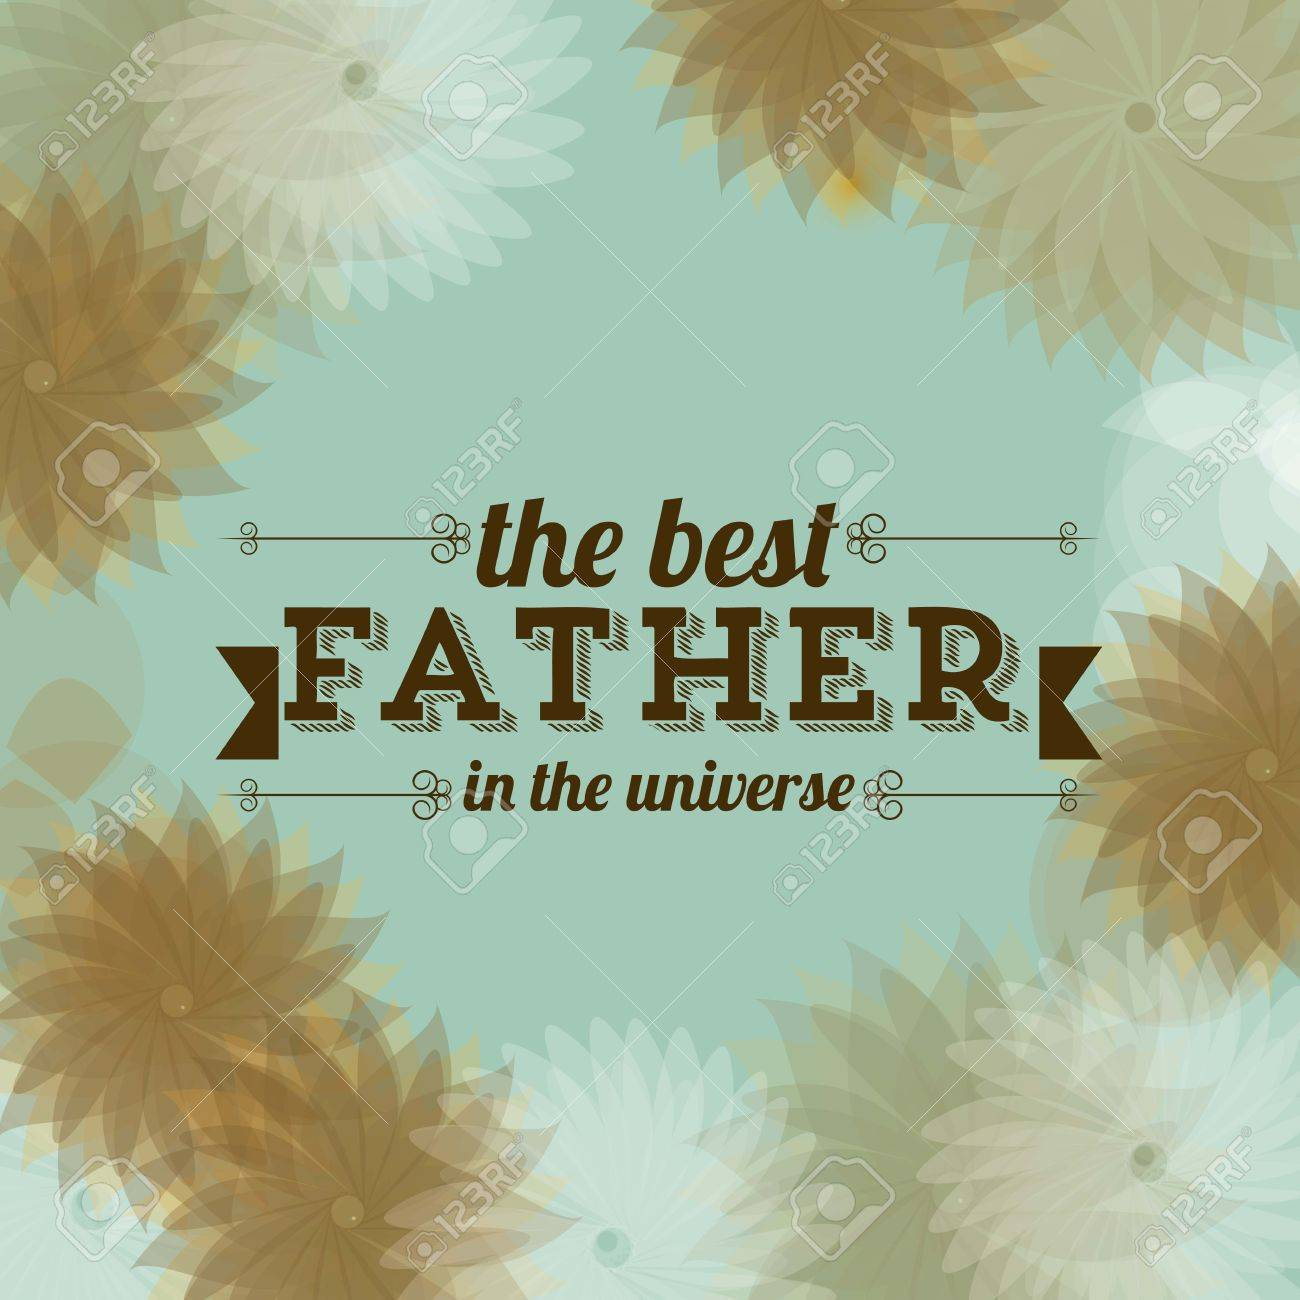 Illustration for dad, happy father's day, vector illustration Stock Vector - 19462042